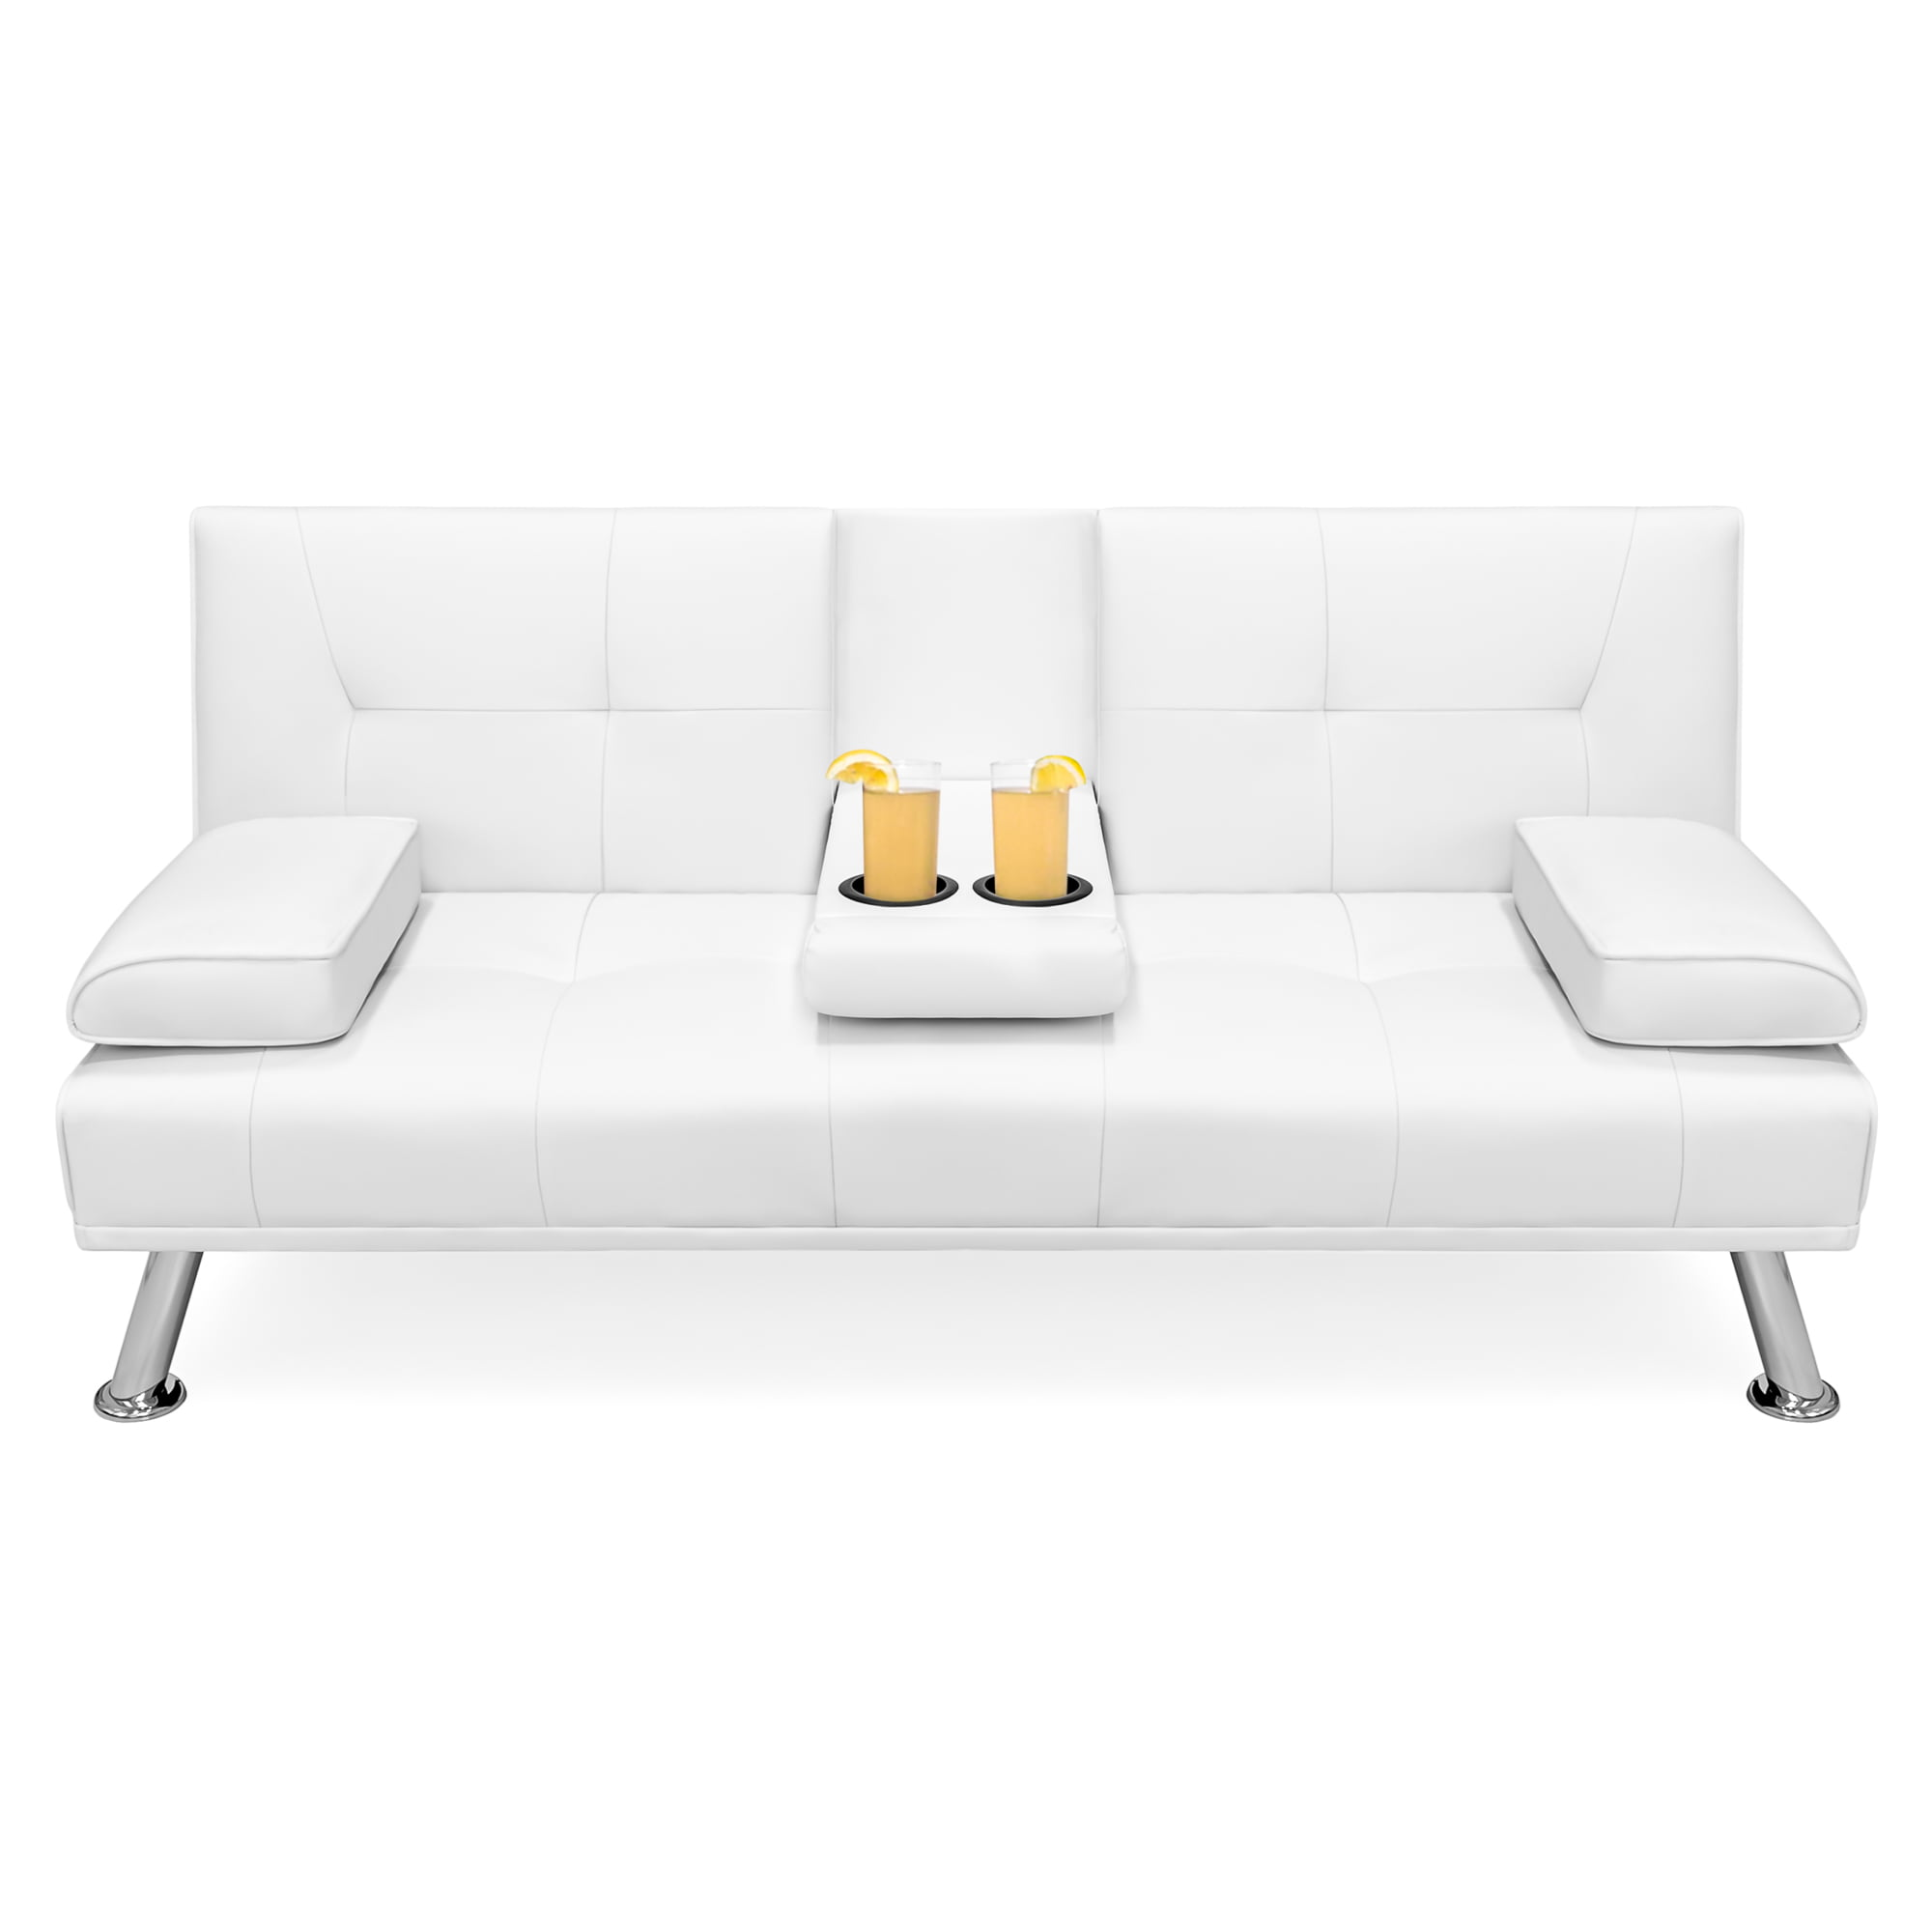 Pleasing Best Choice Products Modern Faux Leather Futon Sofa Bed Fold Up Down Recliner Couch W Cup Holders White Walmart Com Gmtry Best Dining Table And Chair Ideas Images Gmtryco